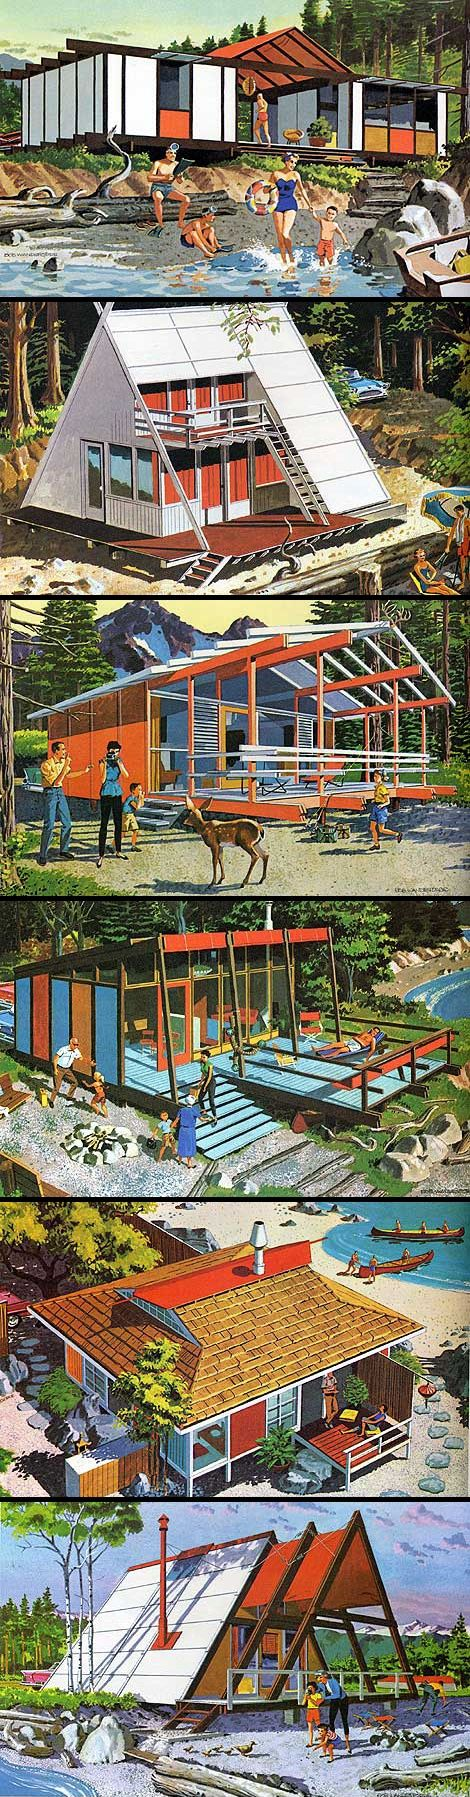 Mid Century Modern House Plans | ... Home Plans, via grainedit.com/2009/05/25/mid-century-modern-home-plans